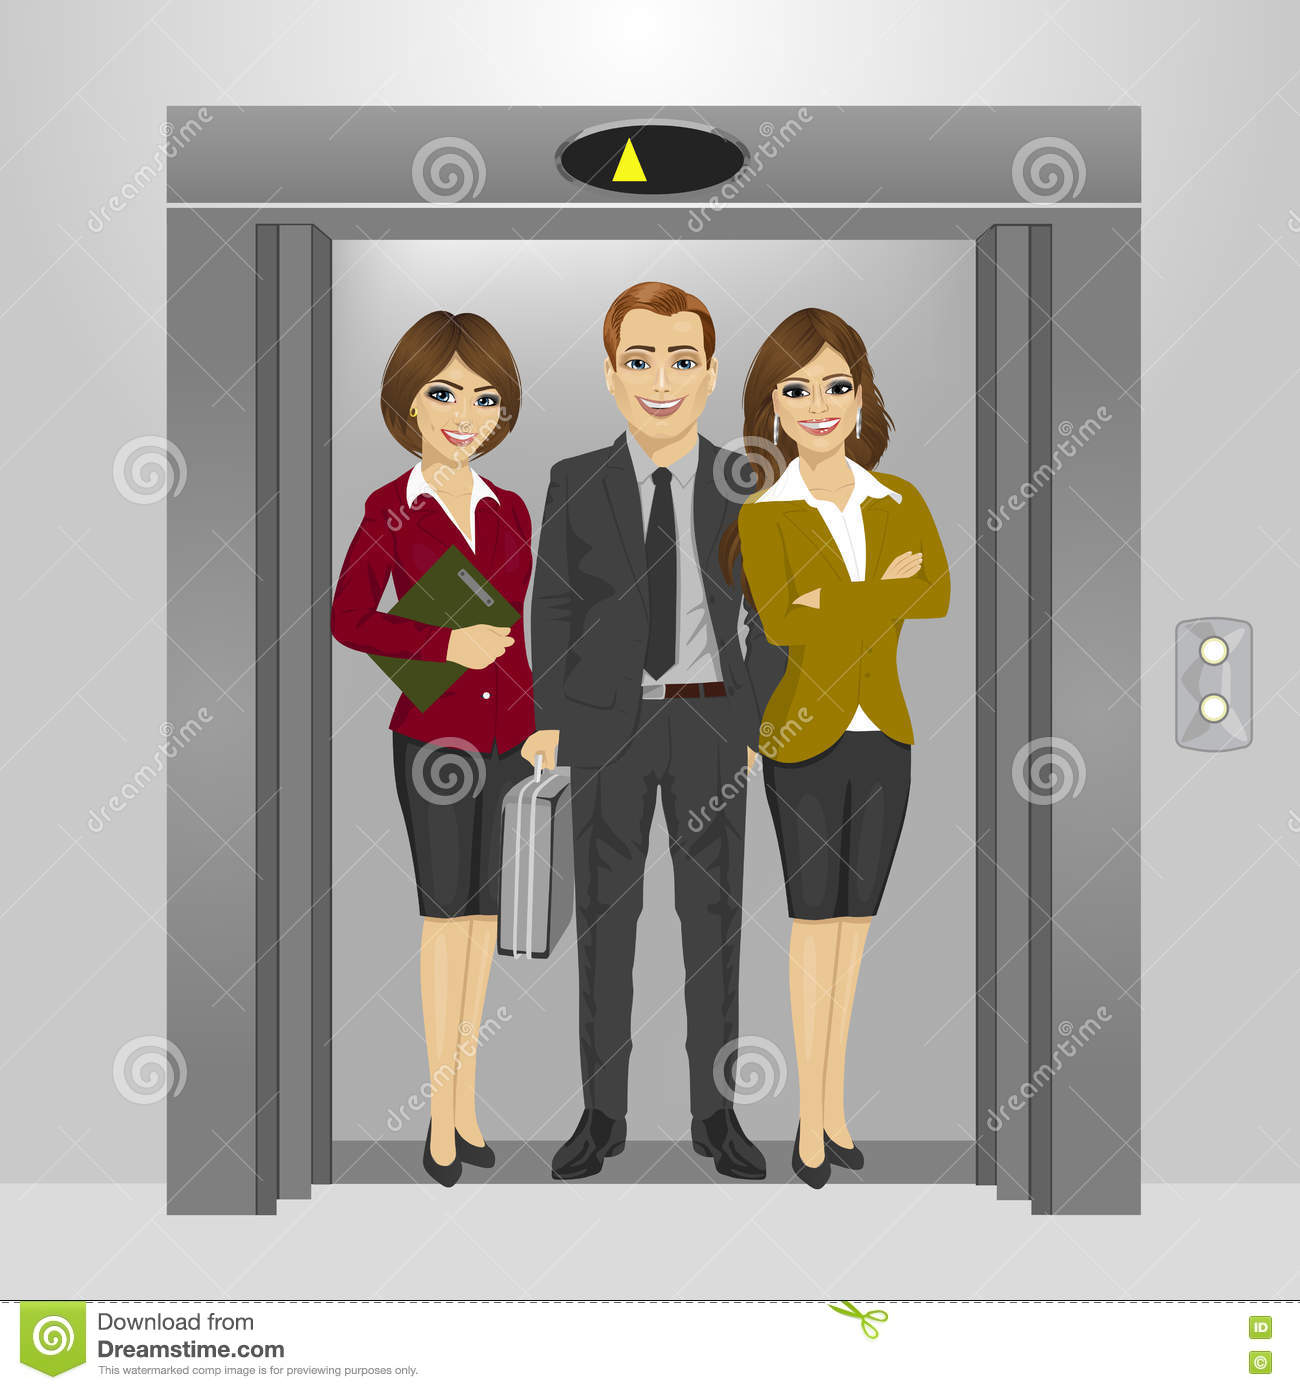 people standing in elevator. royalty-free vector. download business people standing together inside office building elevator in